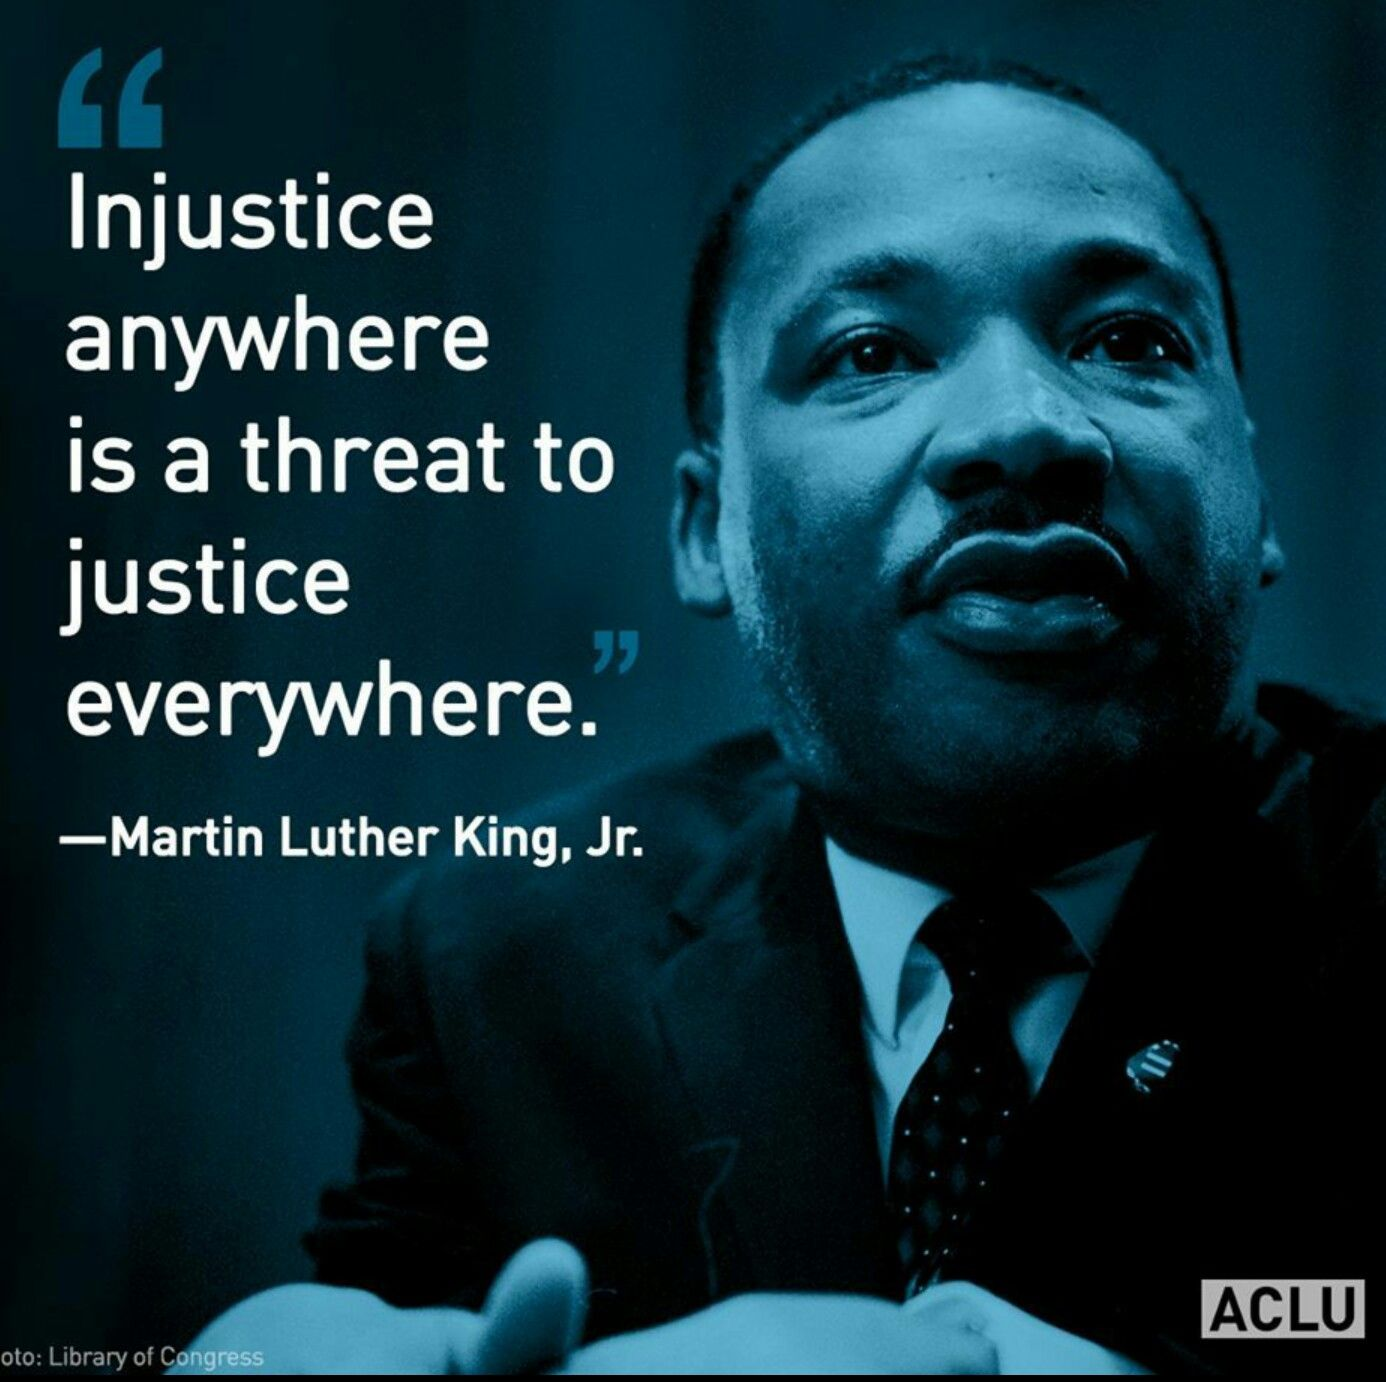 INJUSTICE ANYWHERE IS A THREAT TO JUSTICE EVERYWHERE...